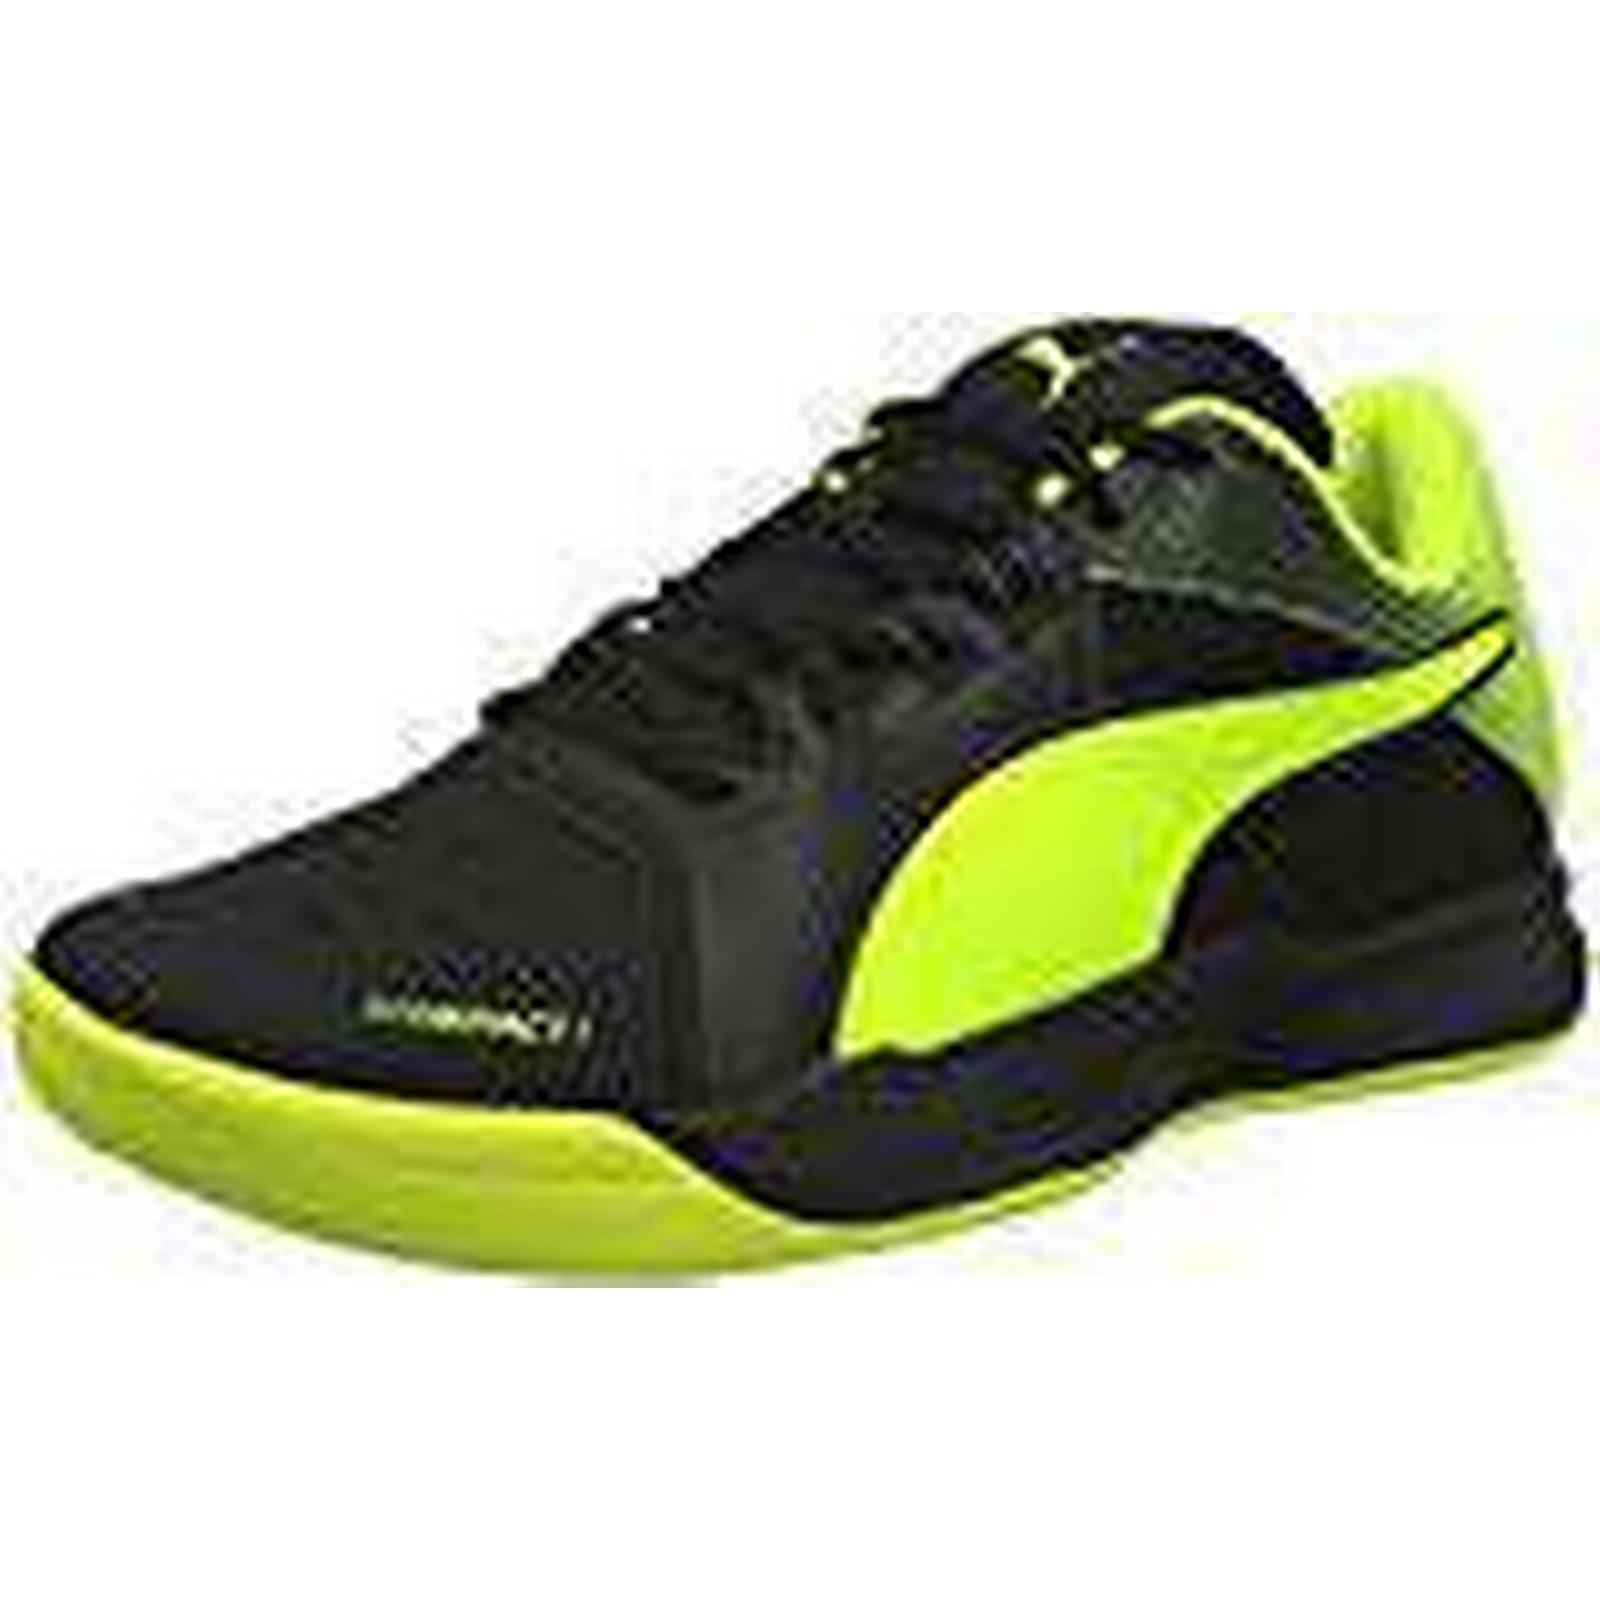 Puma Men's evoIMPACT Yellow 3.2 Football Boots, (Black-Safety Yellow evoIMPACT 01), 7 UK ee421c